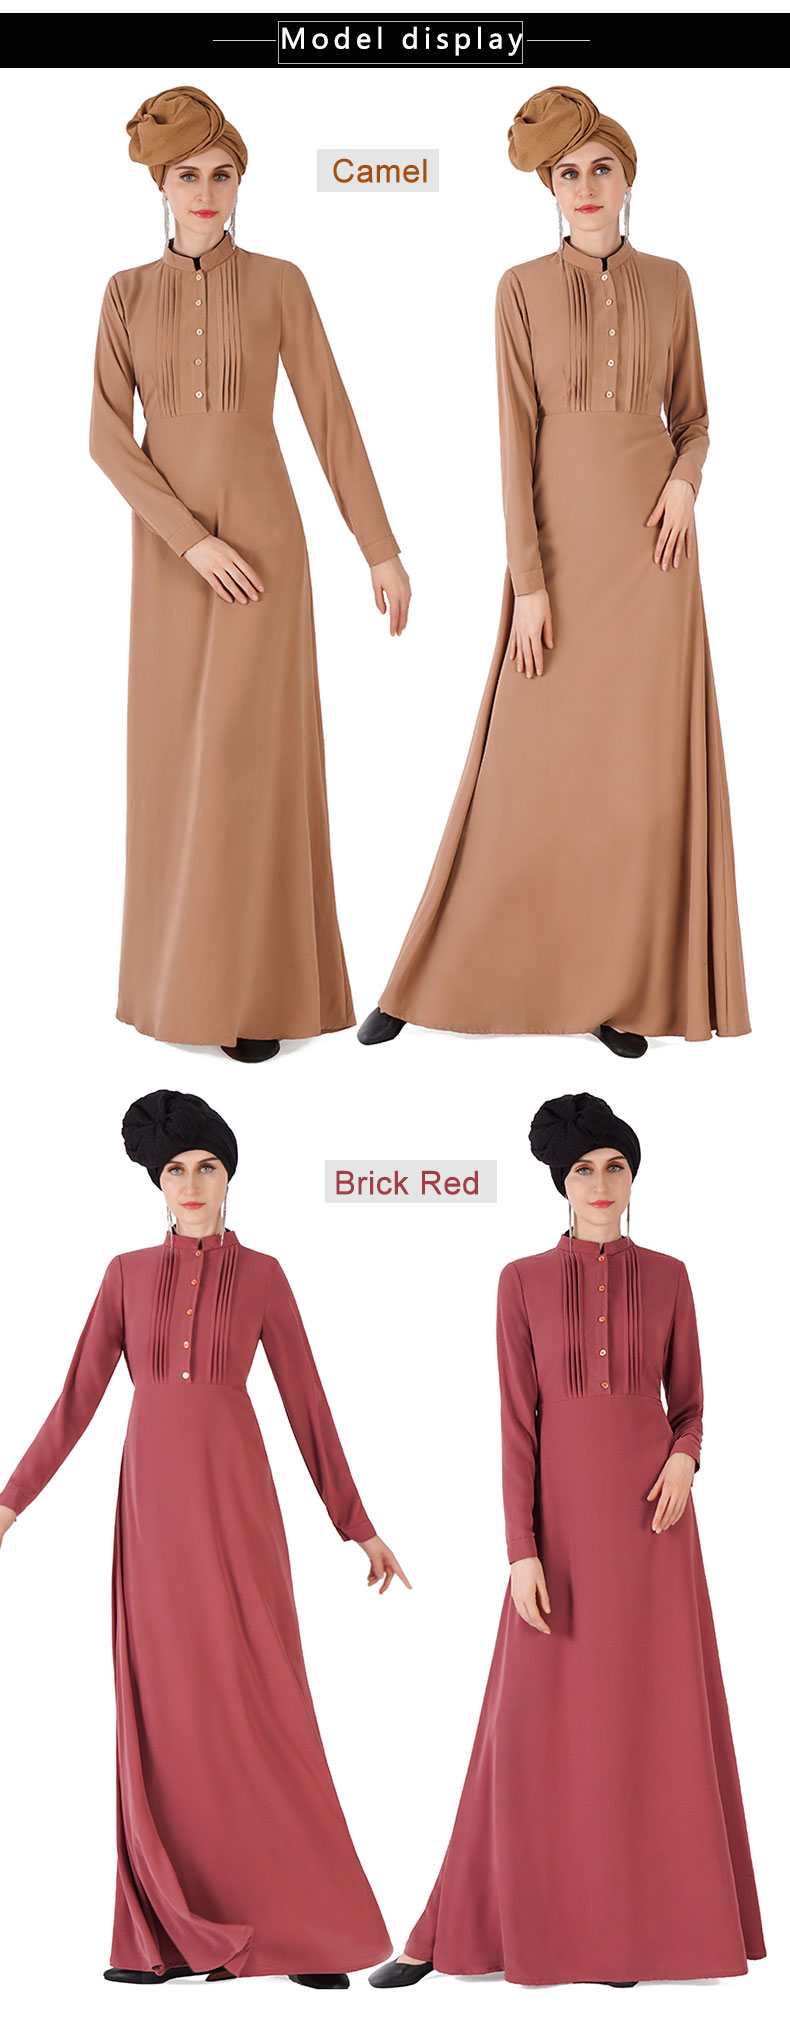 2019 Manufacturer directly supply Front pleat with button design turkish abaya dress with belt islamic clothing